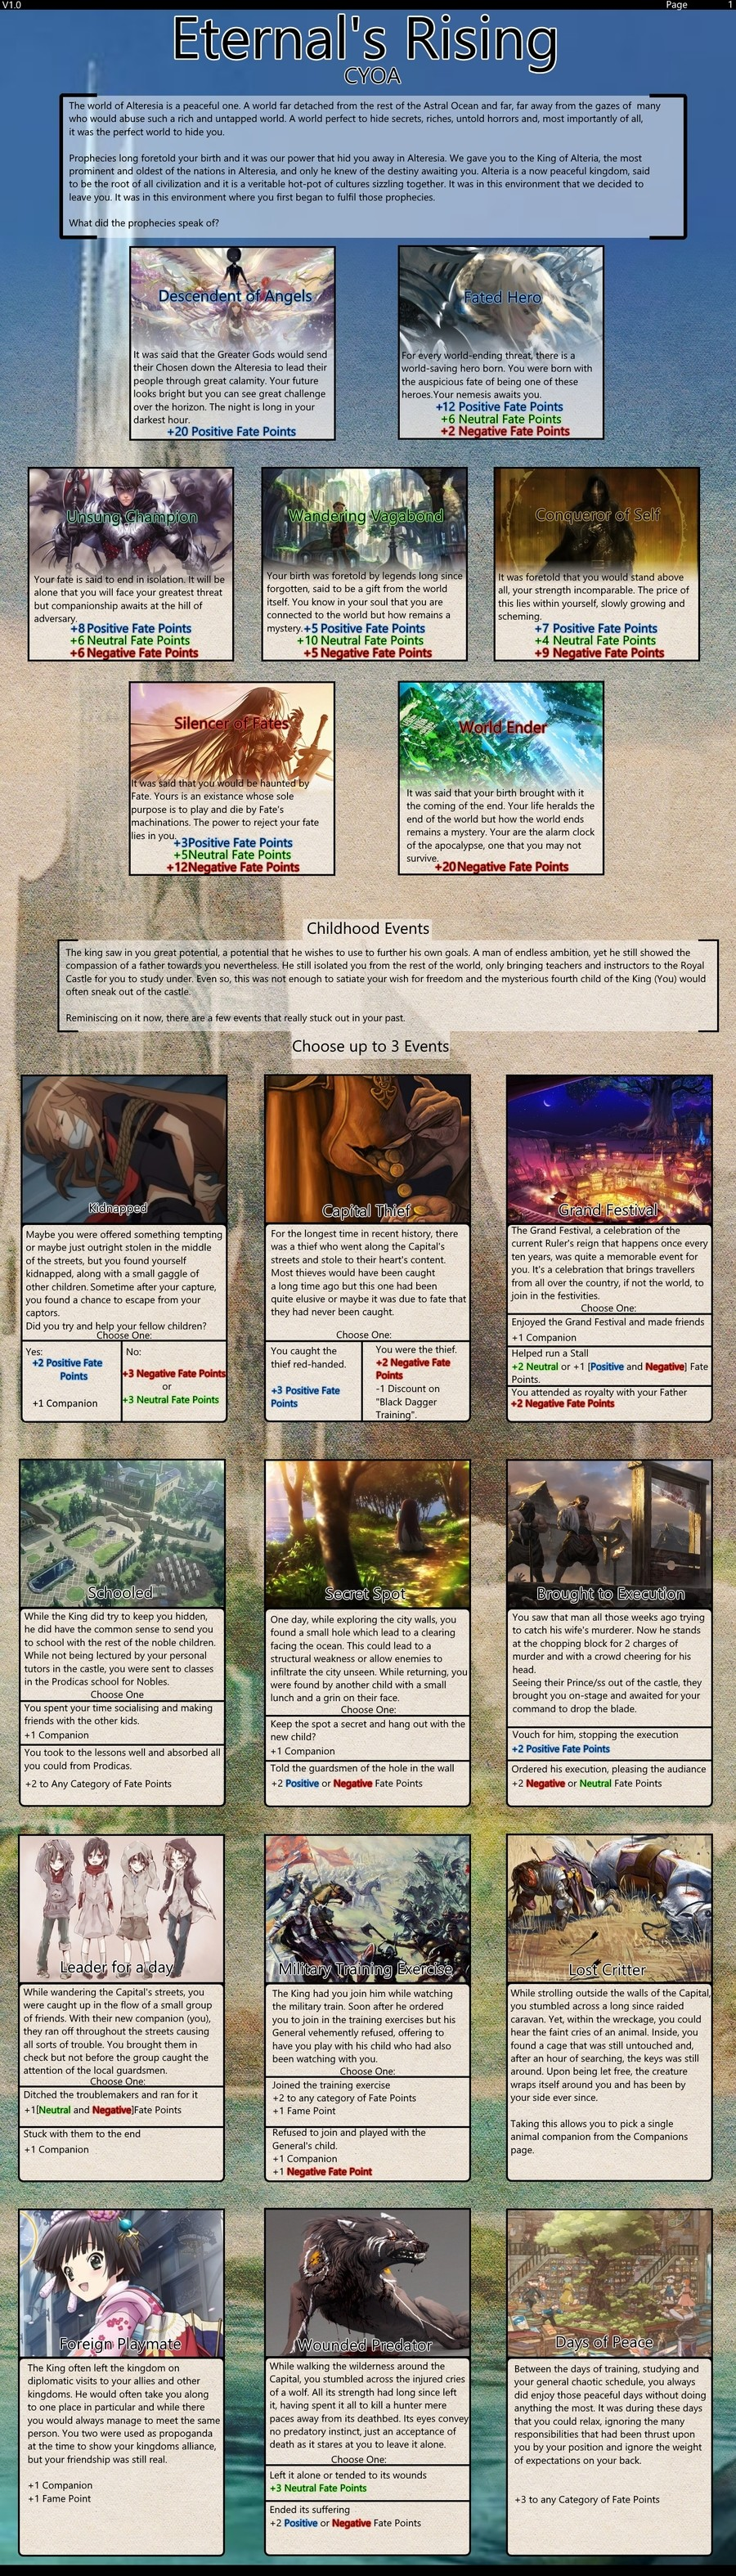 Eternal's Rising CYOA. This is huge.. This is possibly the biggest cyoa I've seen.